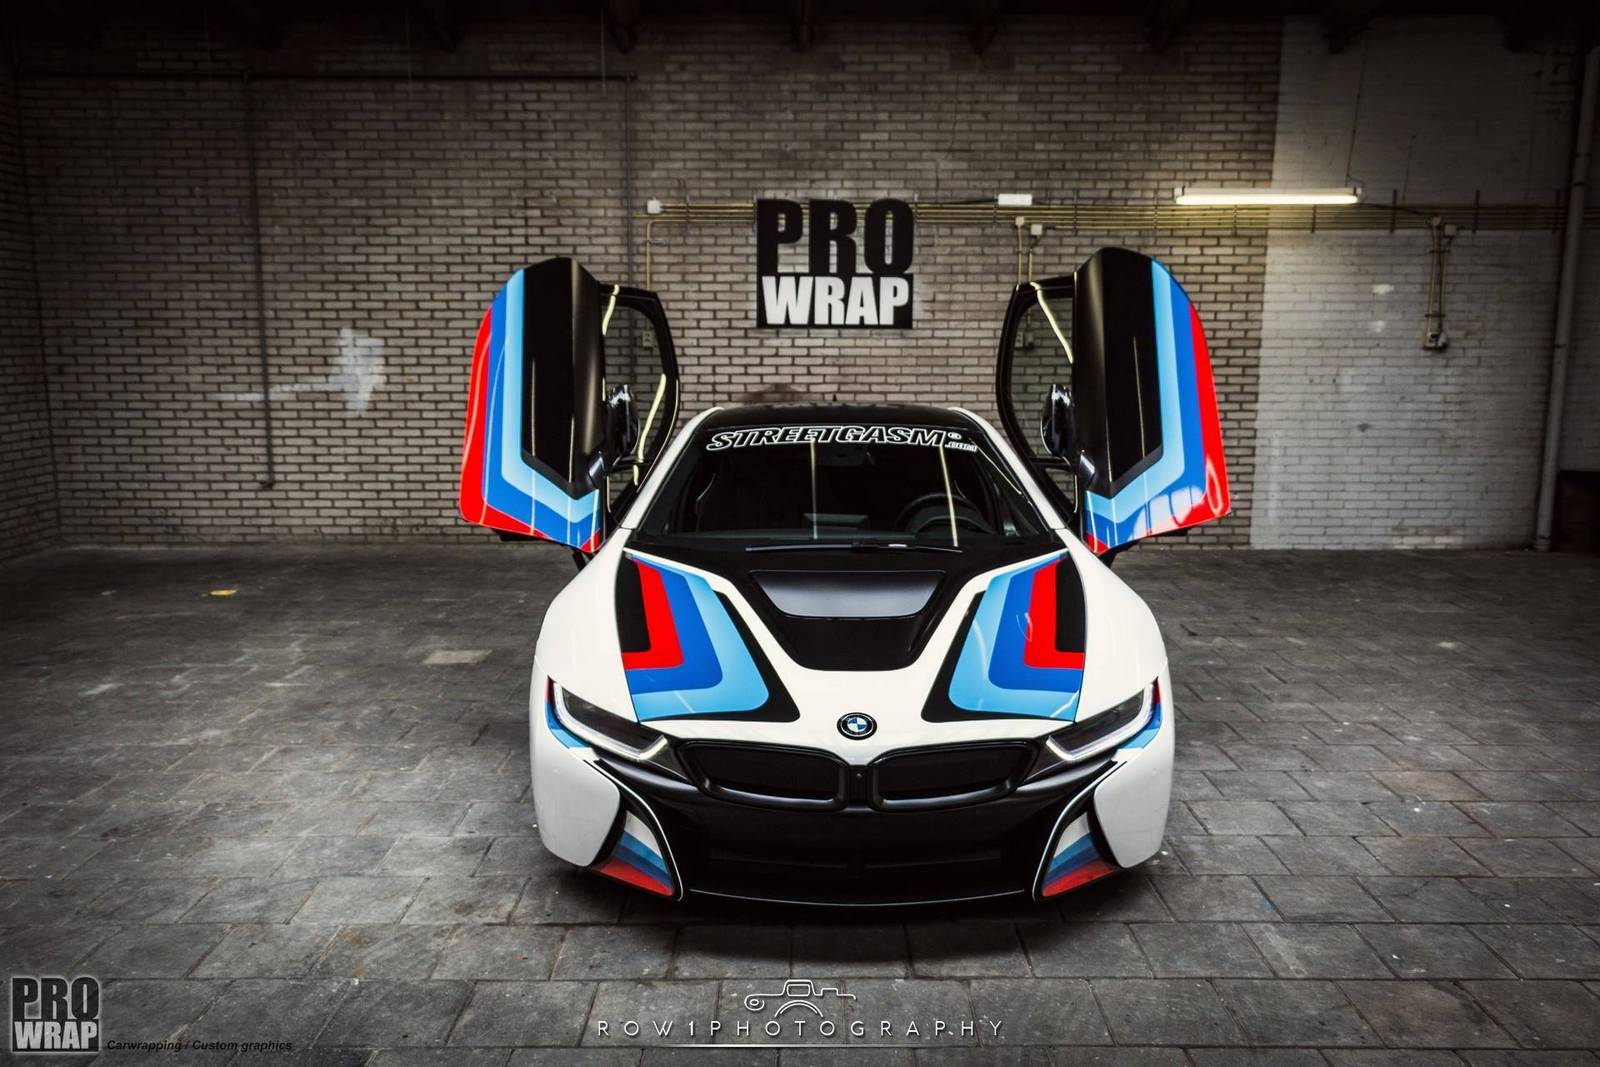 Custom Wrapped BMW i8 by Prowrap in The Netherlands - GTspirit